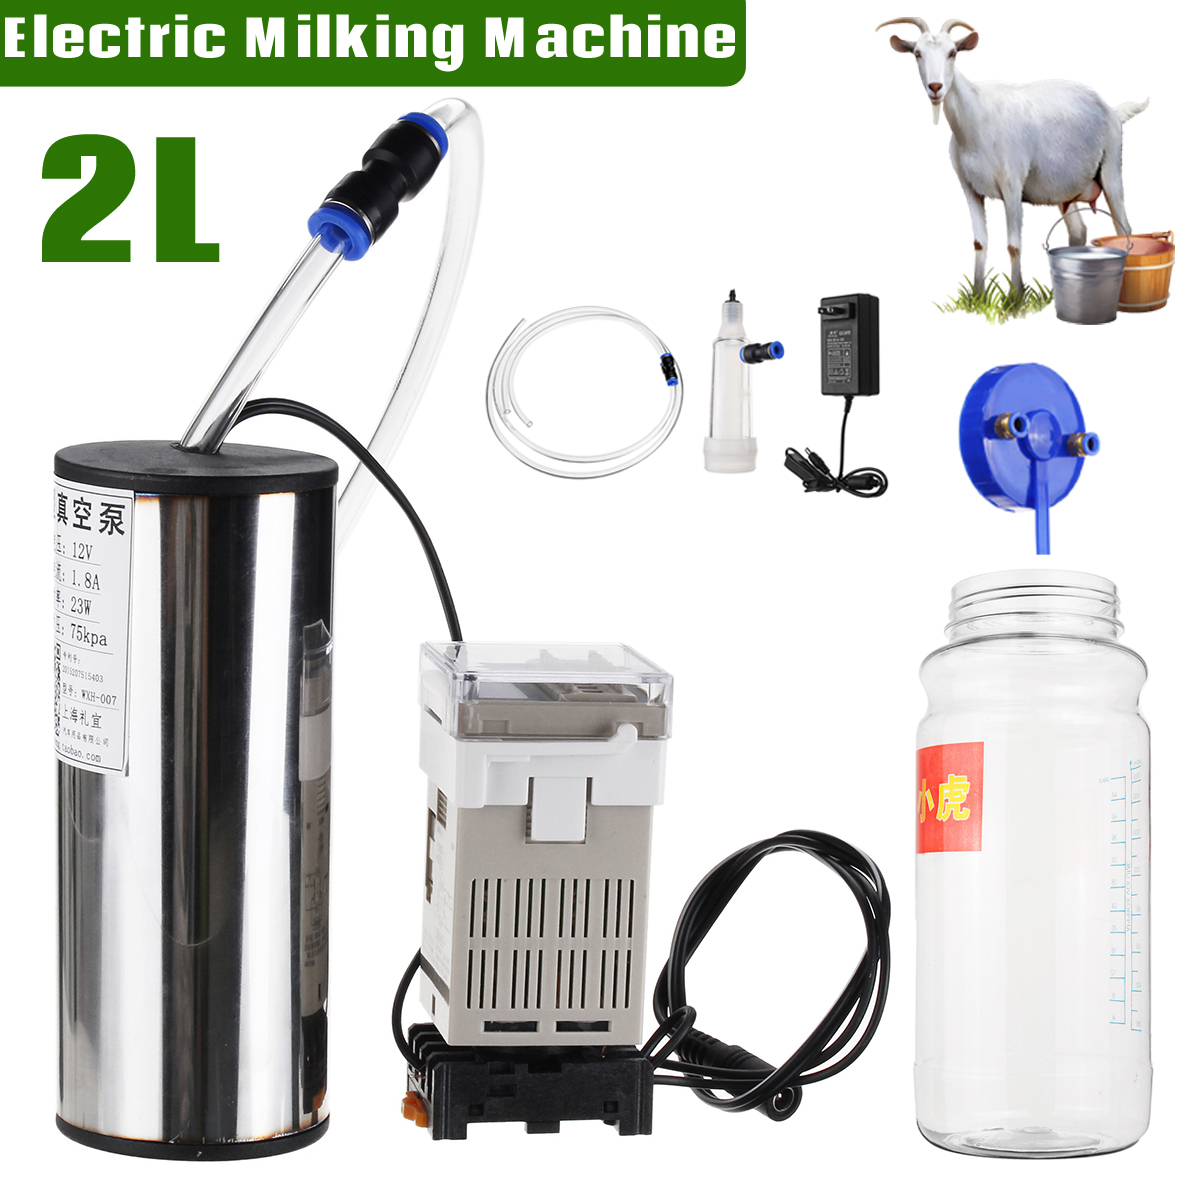 2L Portable Vacuum Pump Electric Milking Machine Milker Cow & Goat Milking Machine US Plug